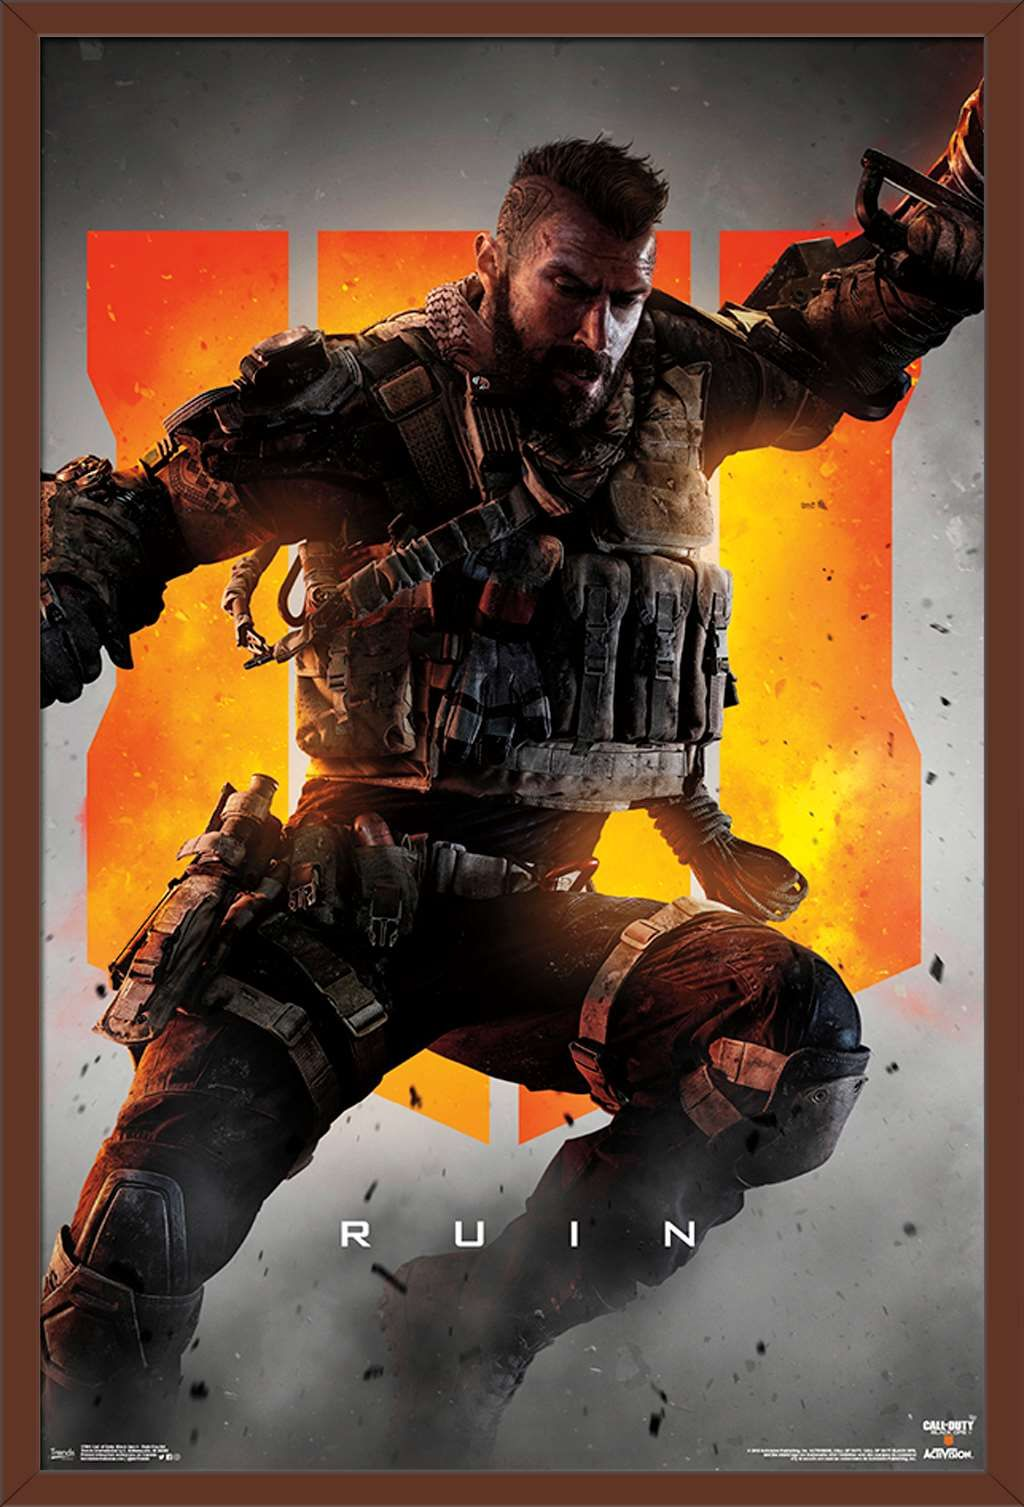 Call Of Duty Black Ops 4 Ruin Key Art Poster Walmart Com In 2021 Call Of Duty Call Of Duty Black Black Ops